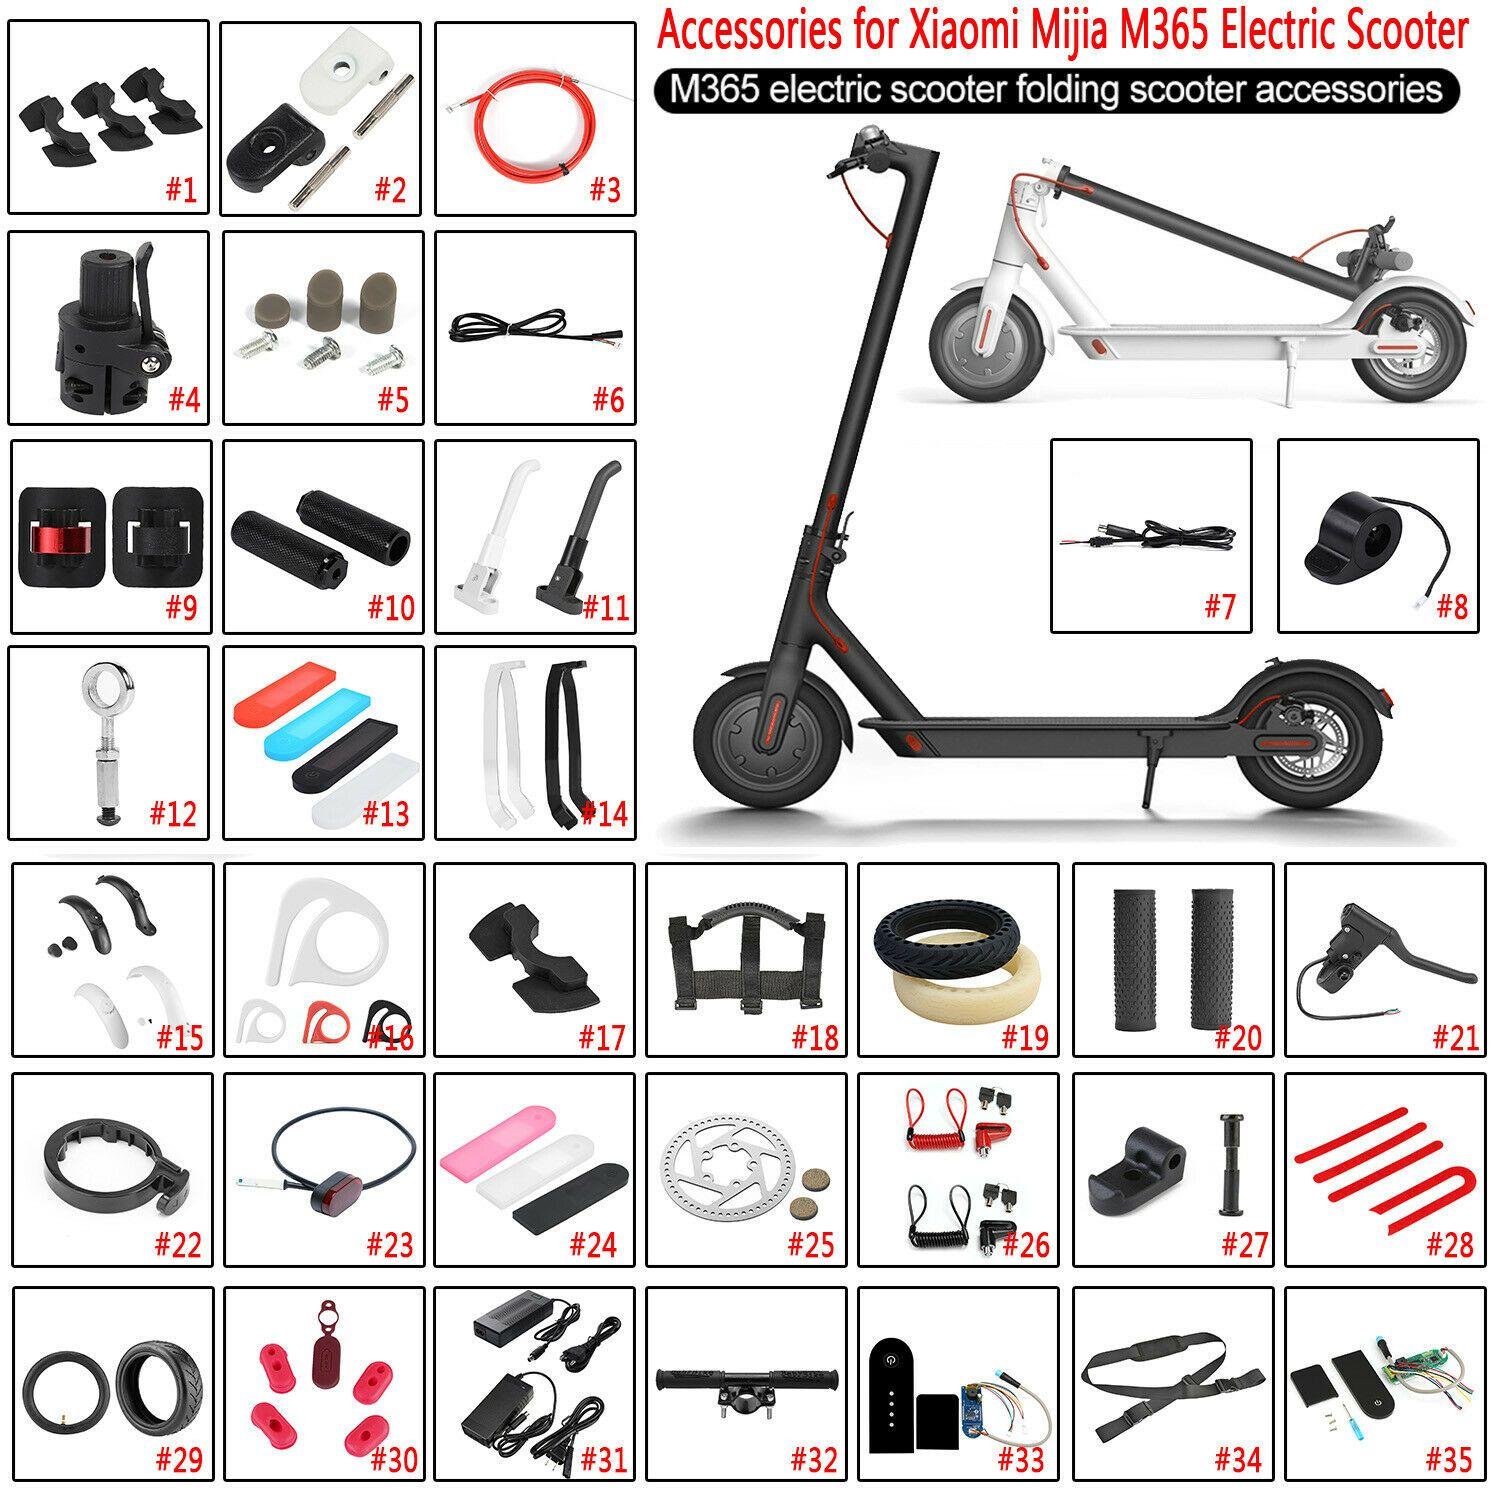 Details About For Xiaomi Mijia M365 Miscellaneous Electric Scooter Repair Accessory Piece Show Original Title Electric Scooter Best Electric Scooter Electricity